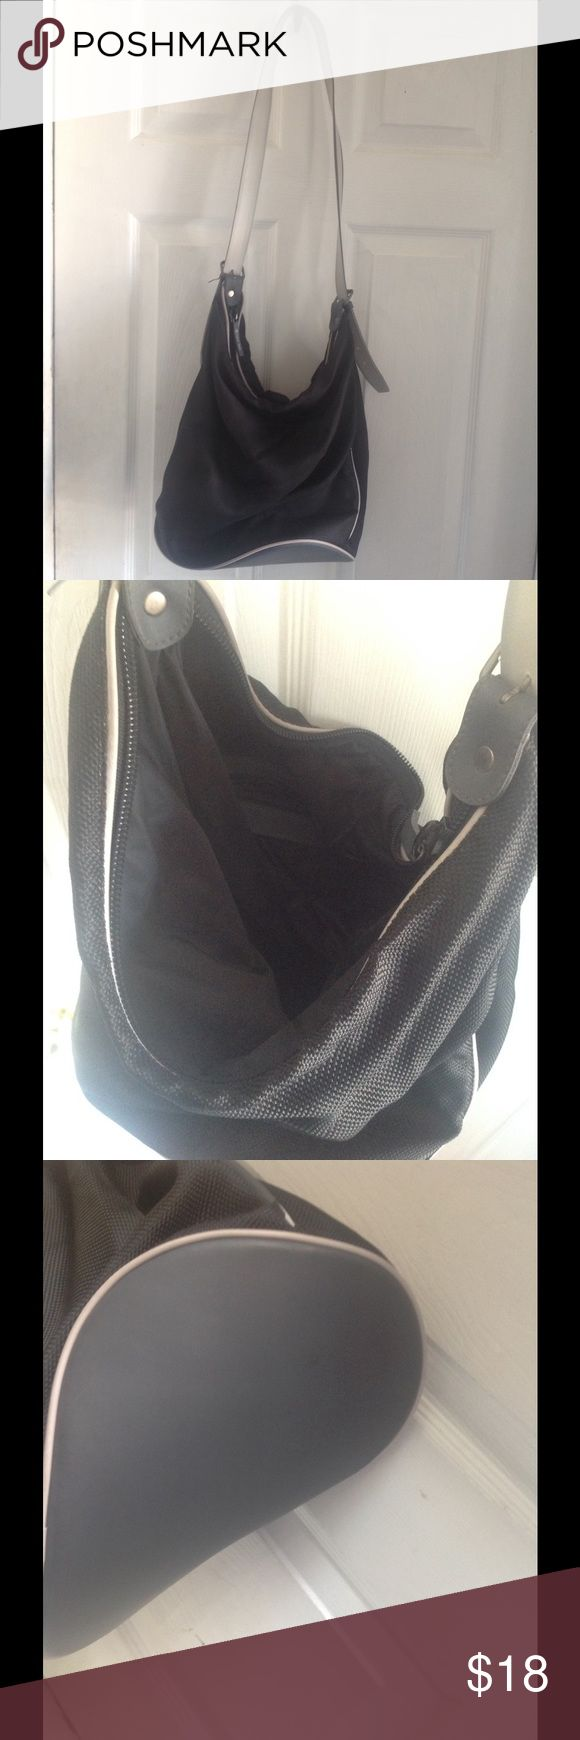 🎁CYBER WEEK DEAL🎁CALVIN KLEIN Bag Used once. No stains or rips. Super clean. 13x13 in. Calvin Klein Bags